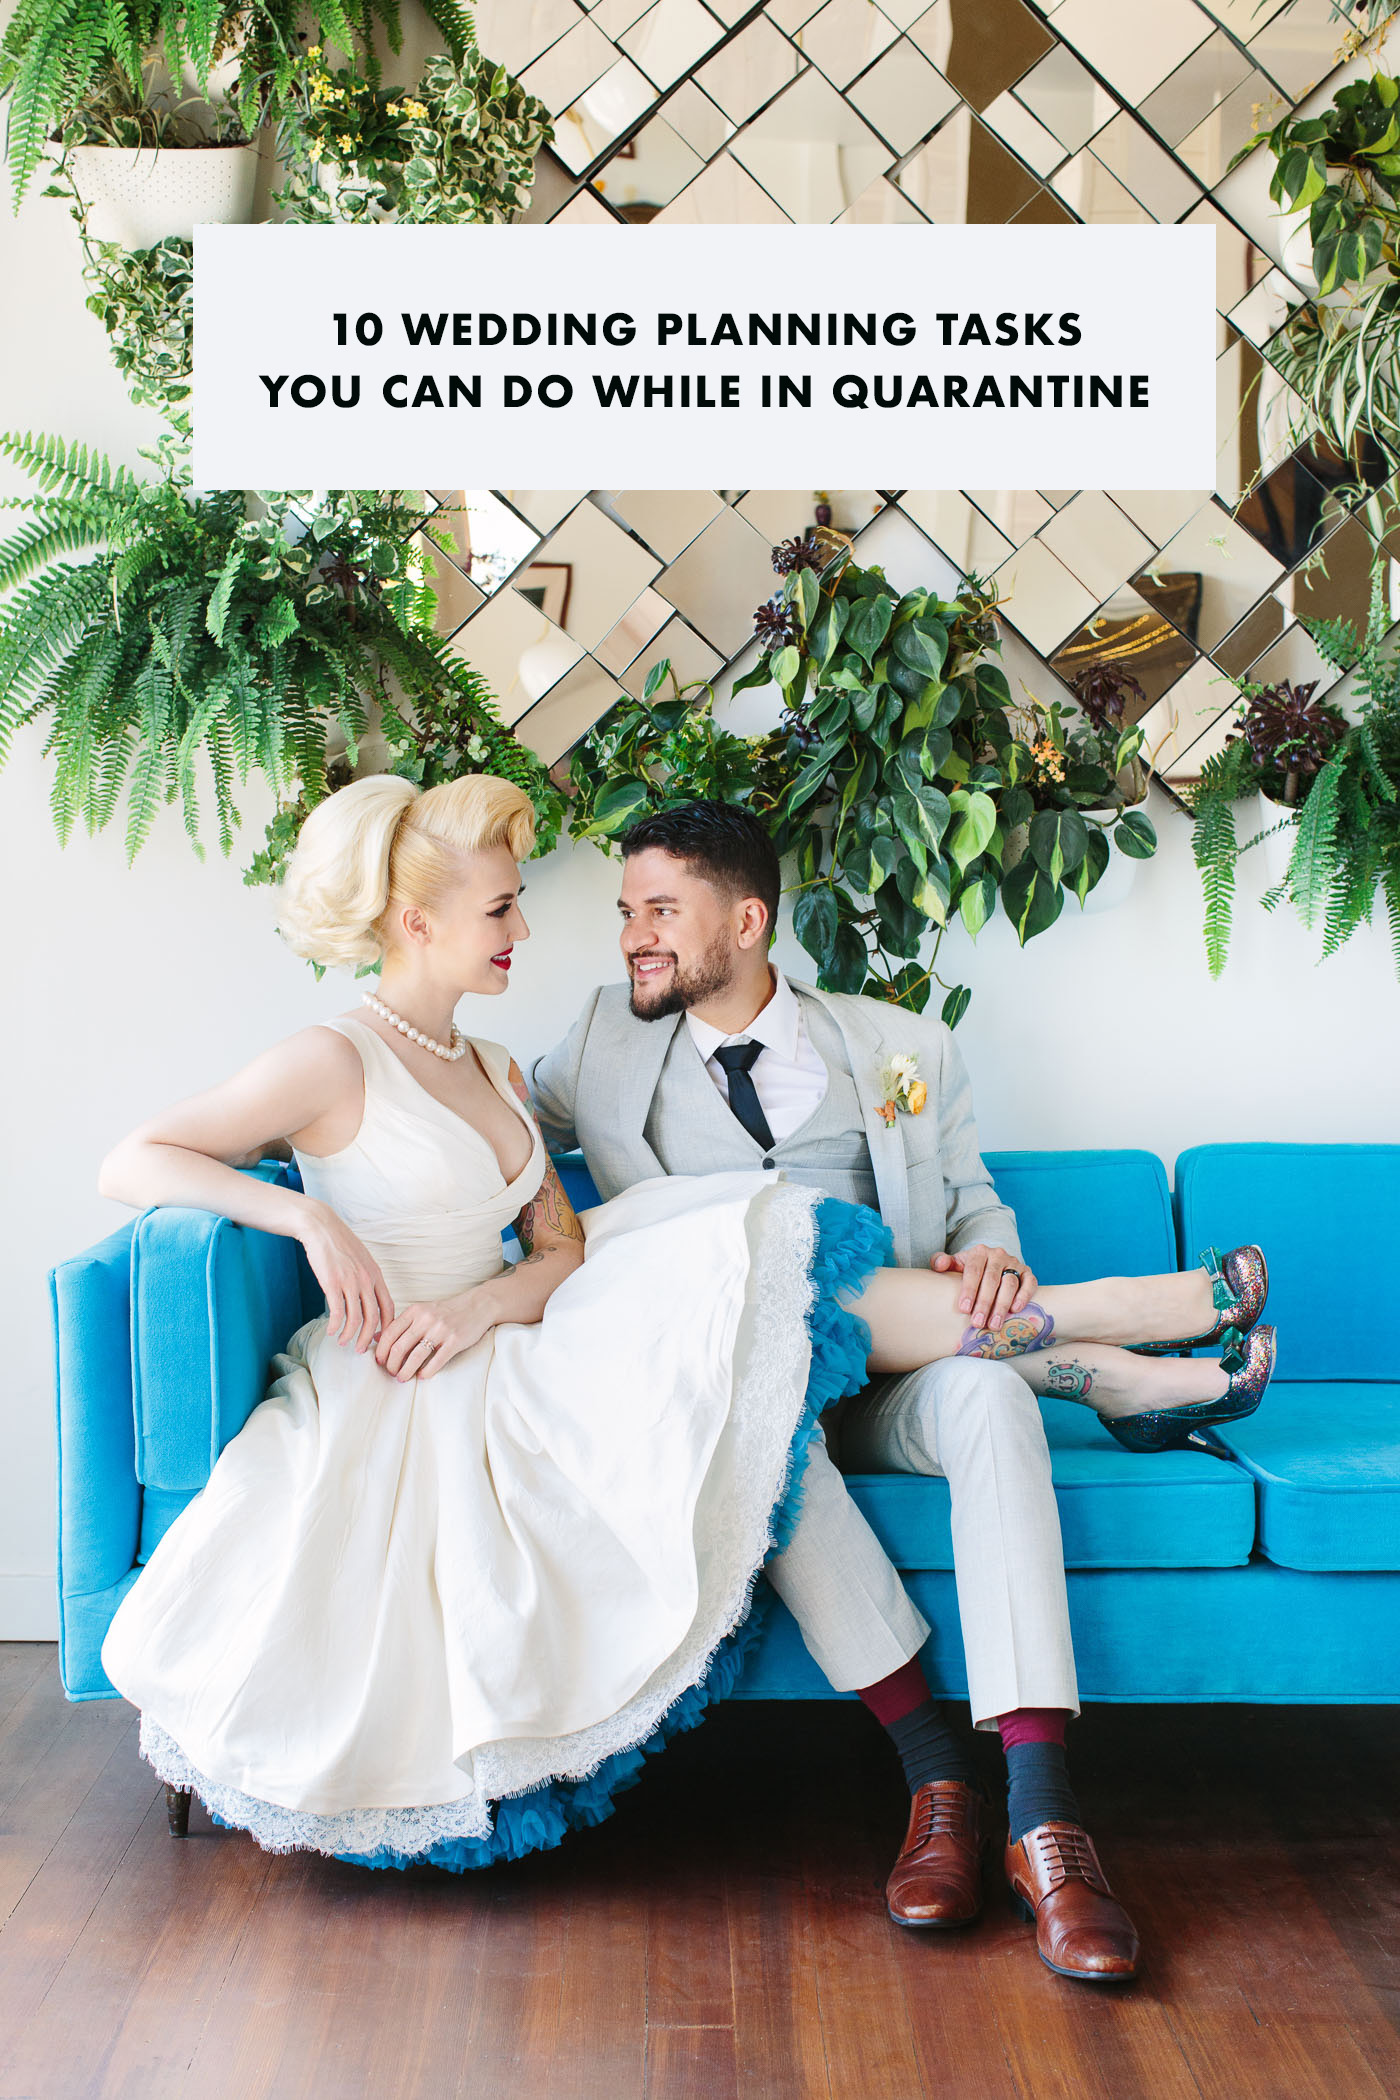 10 Wedding Planning Tasks You Can Do While in Quarantine